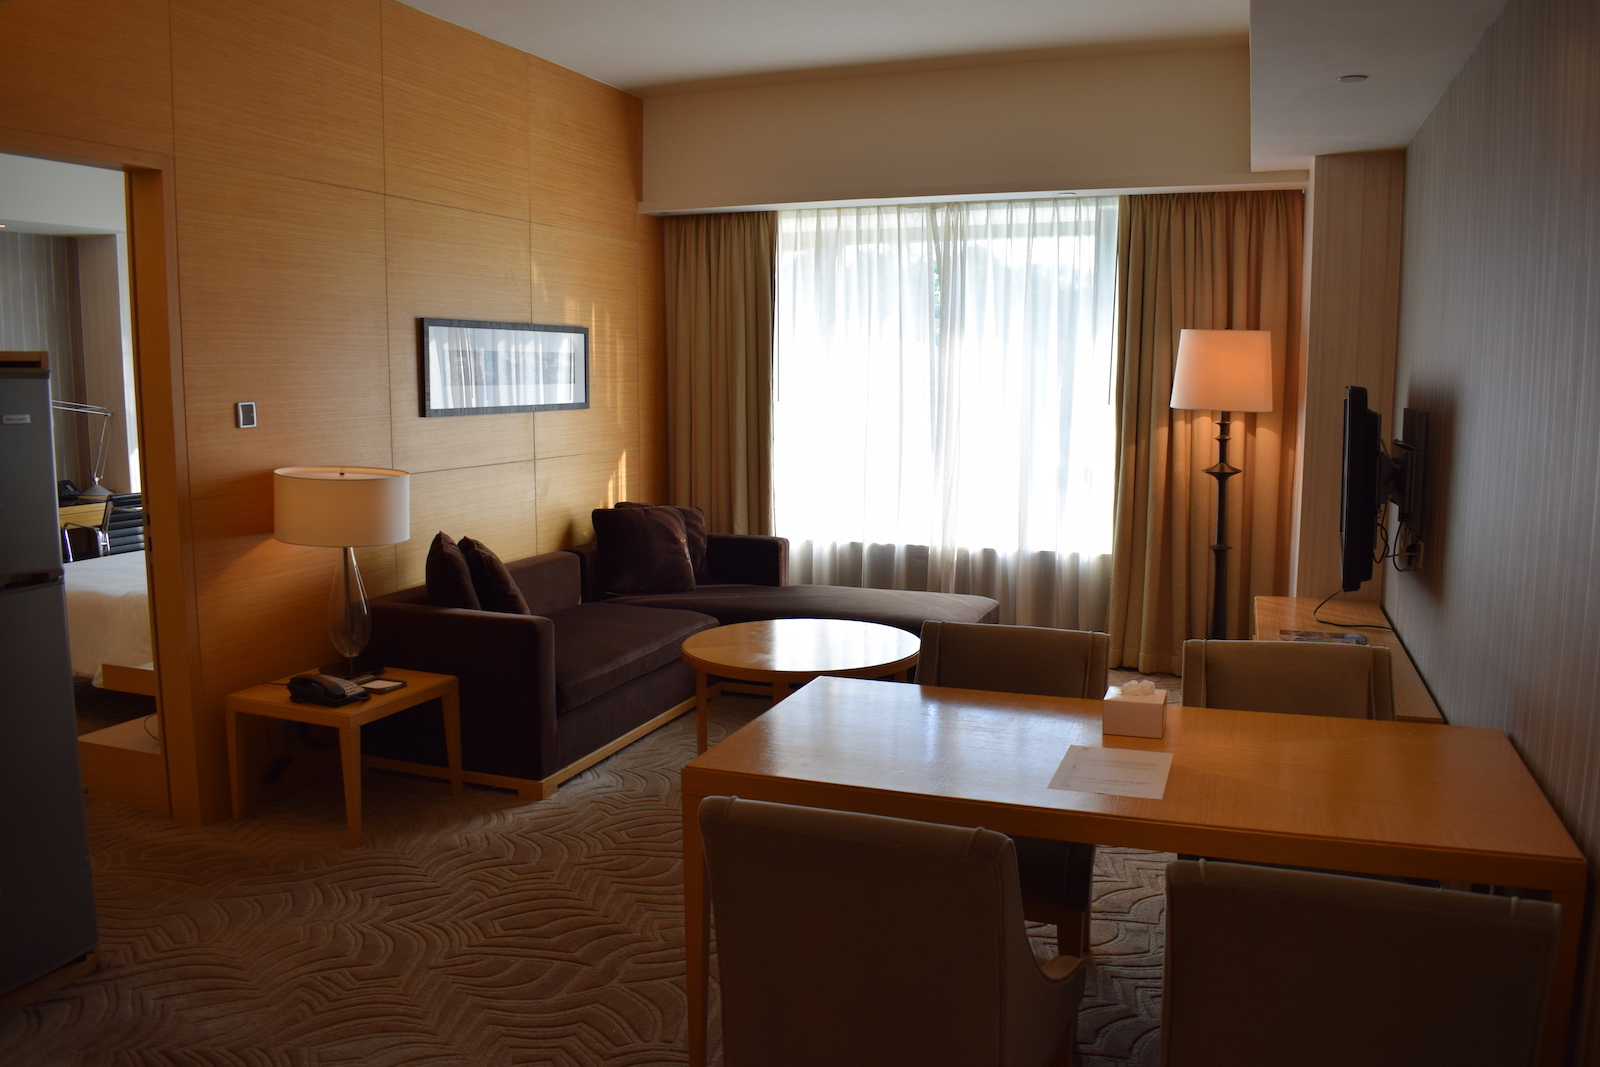 Möbel As Sha Review: Hyatt Regency Hong Kong Sha Tin - Suite - You Have Been Upgraded